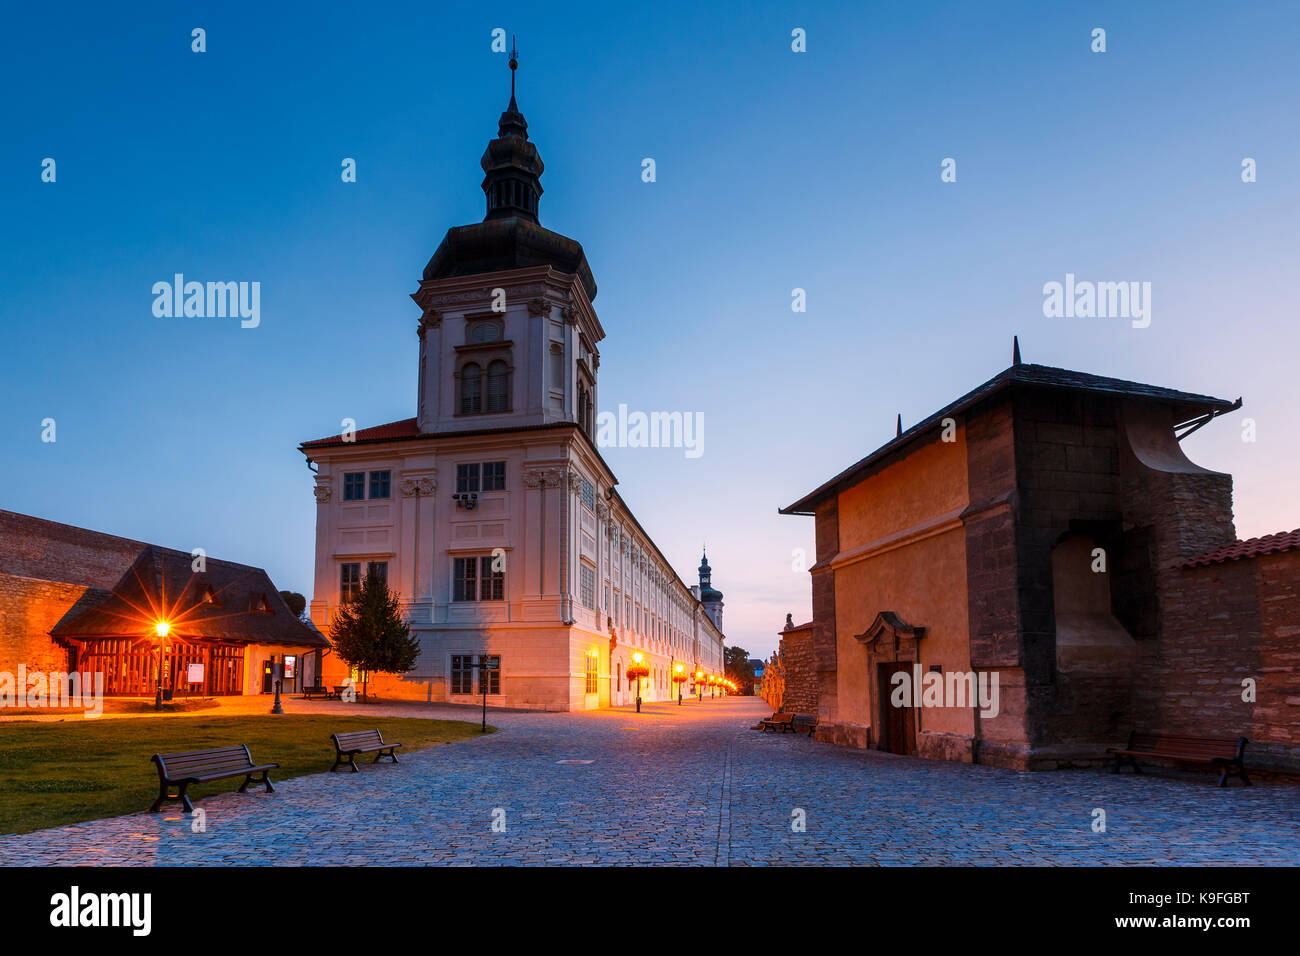 Jesuit collage in the old town of Kutna Hora. - Stock Image